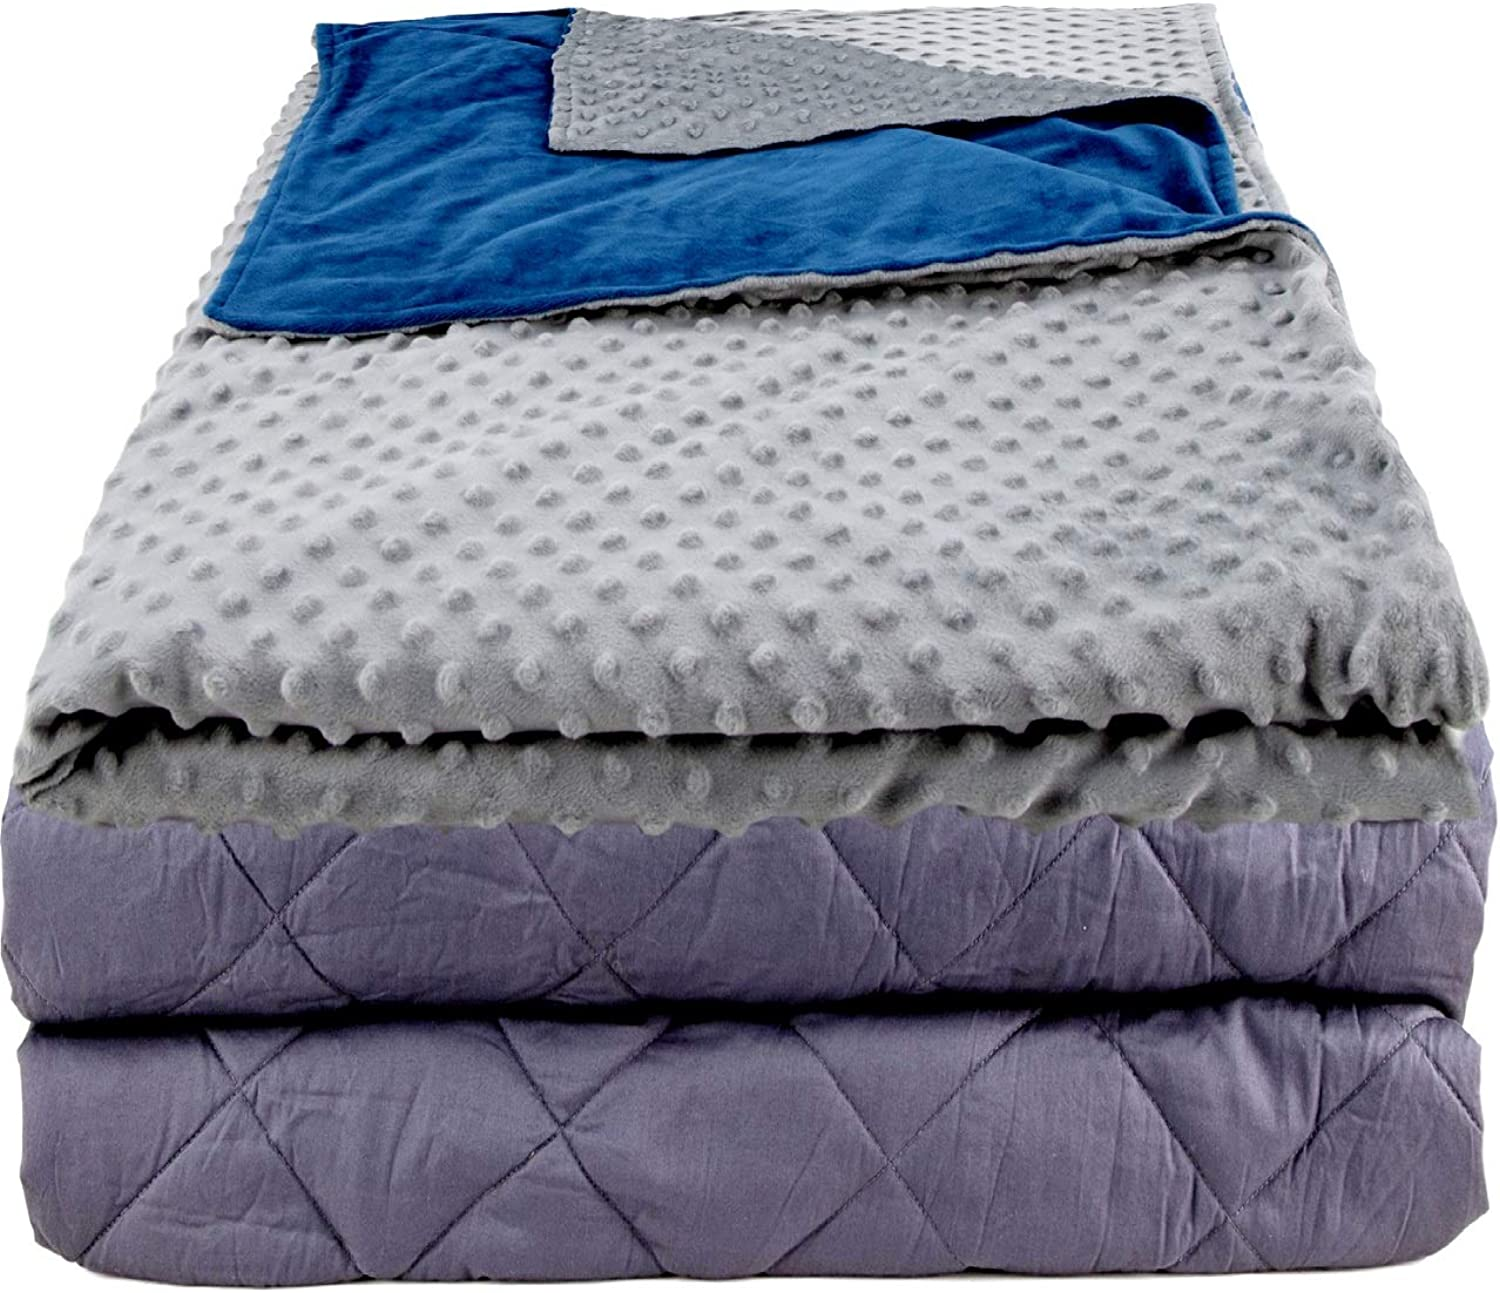 Aviano 10 lbs Weighted Blanket (Cooling Cotton)   Adult 48 x72    w Super Soft Duvet Cover (Cuddly Warm)   10lb Weighted Blanket Combo   for Adults Between 70-120 lbs   Dual-Sided color